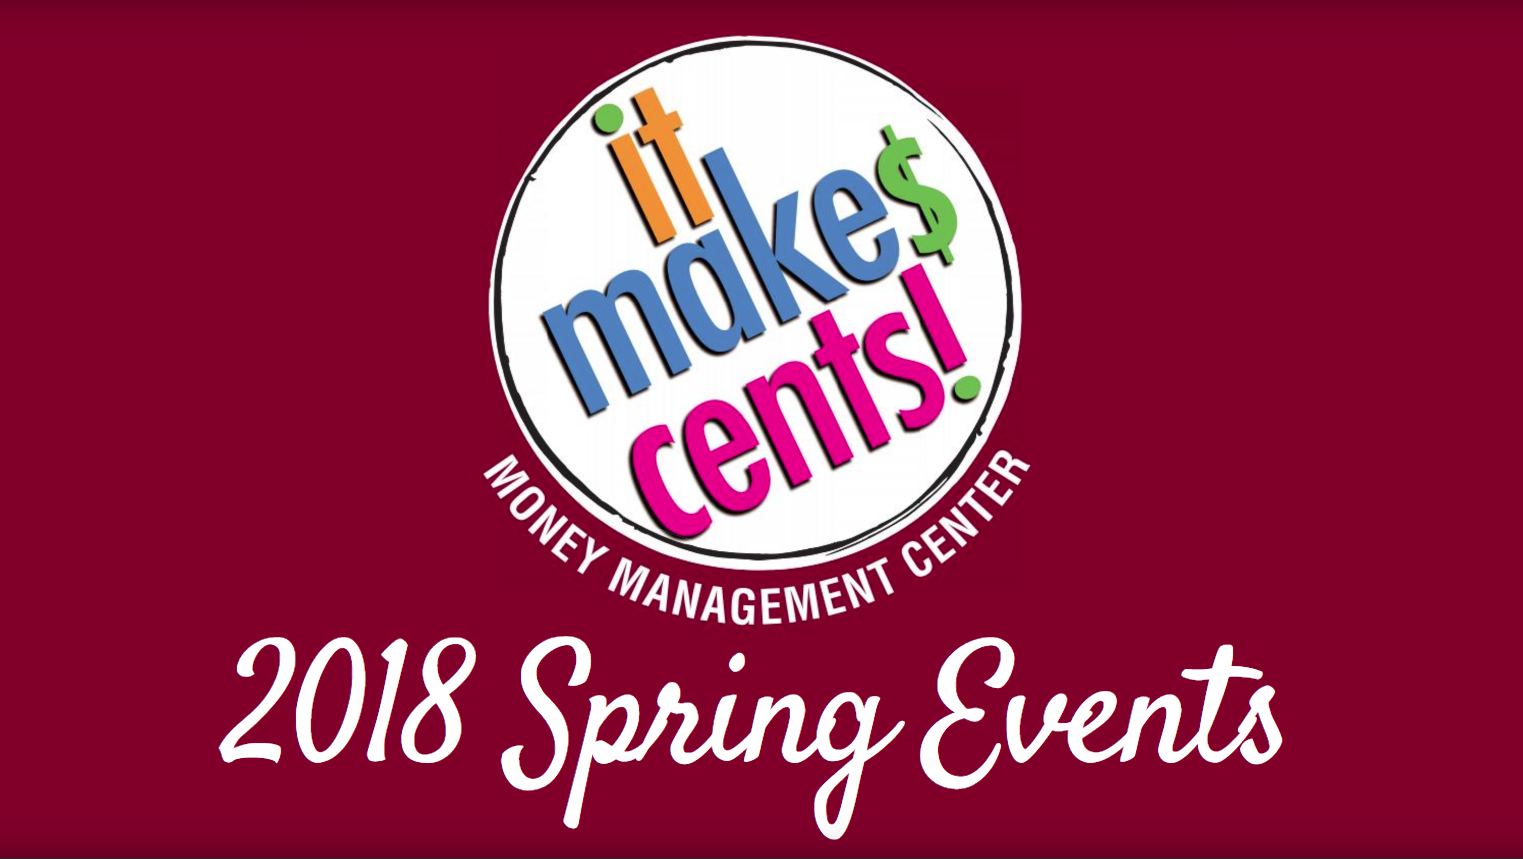 IMC! Spring Events